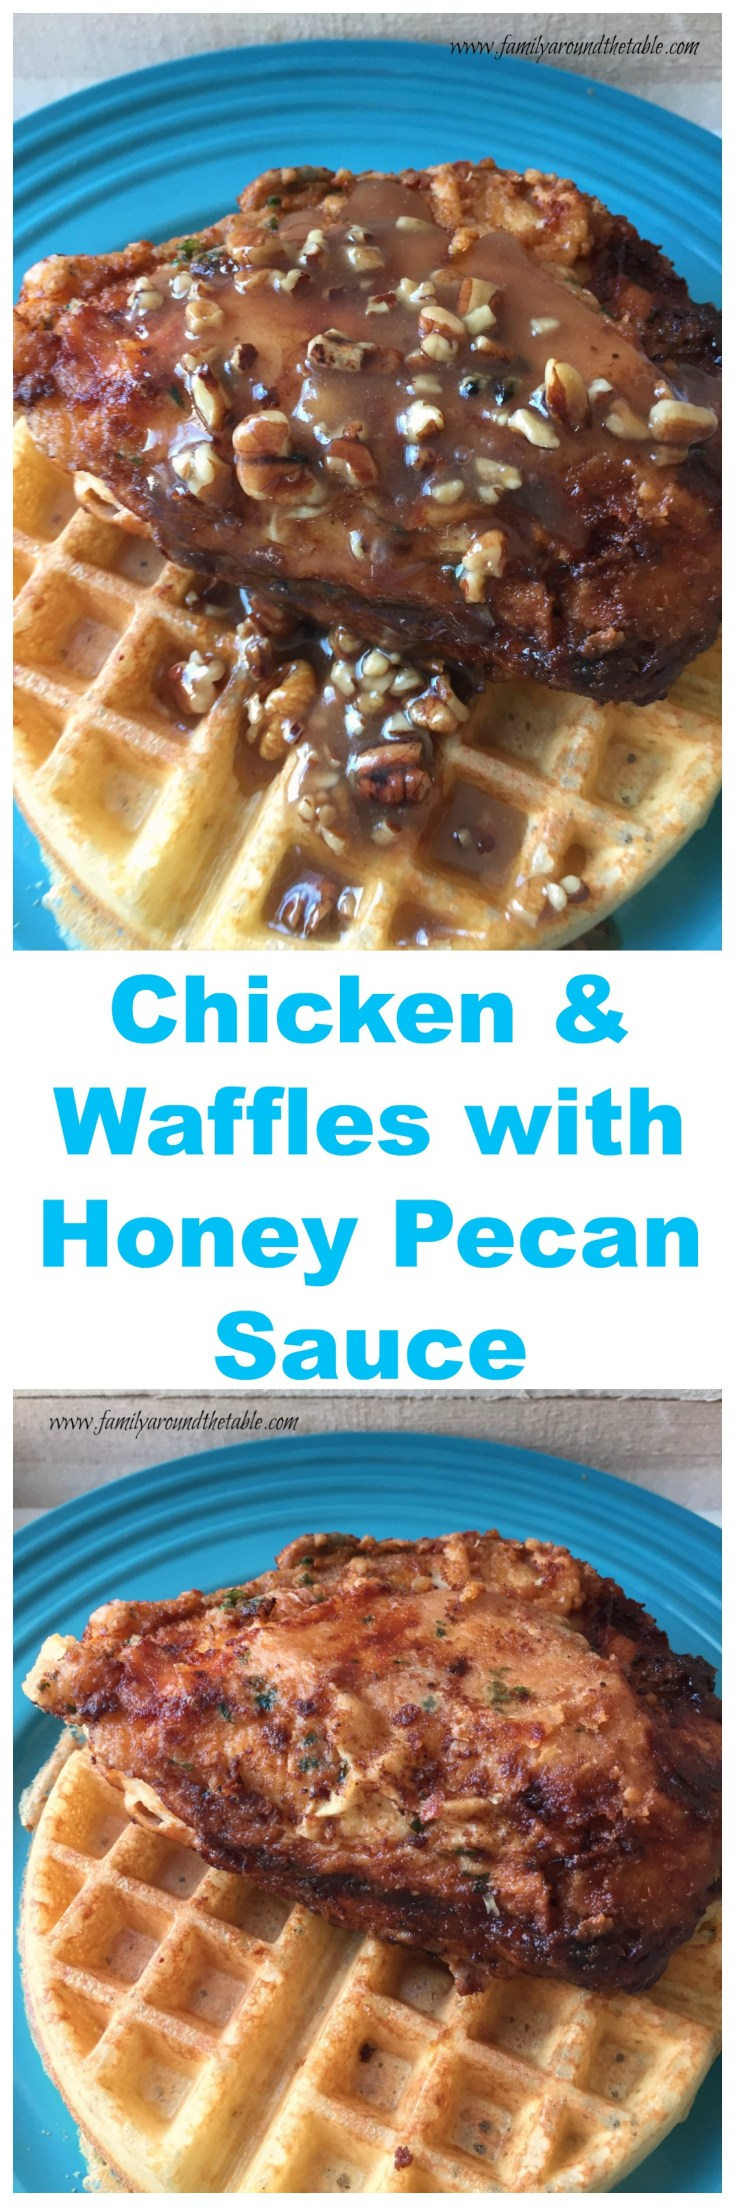 Chicken and Waffles are the perfect combination of breakfast and dinner. The honey pecan sauce puts this dish over the top!